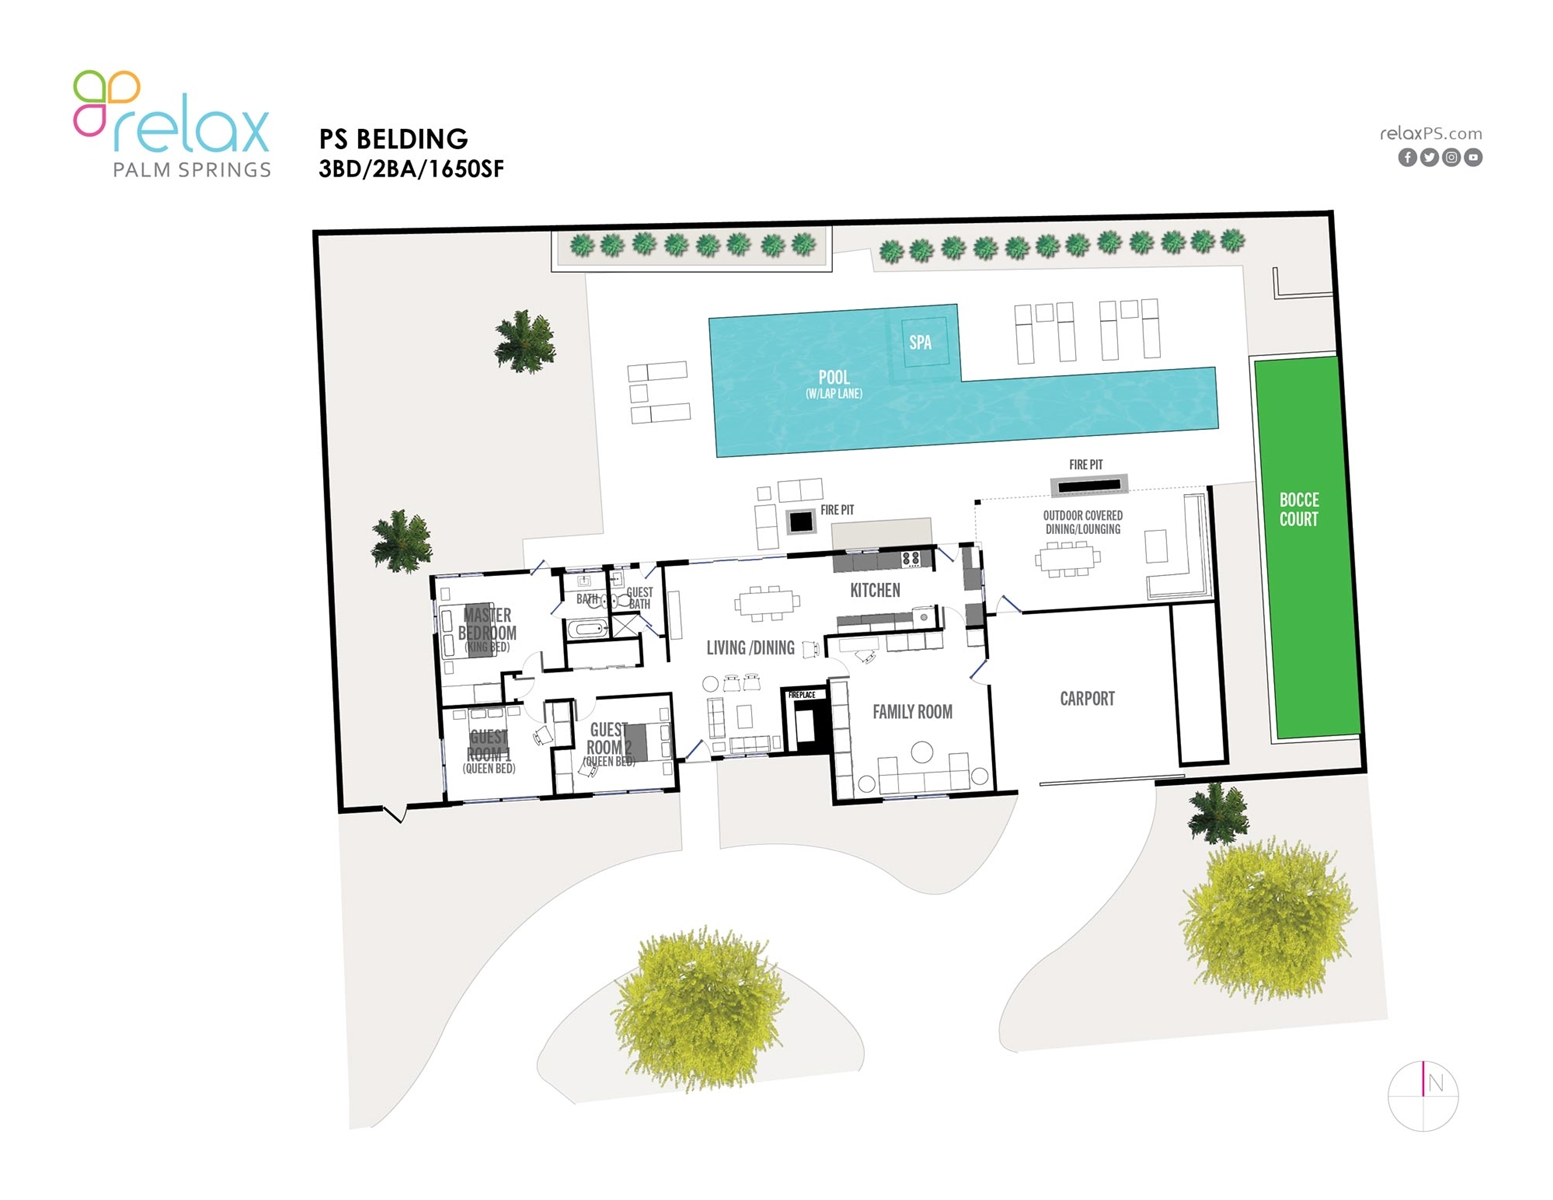 Floor Plan for Architecture, Style, Pool With Lap Lane: All Behind One Door!